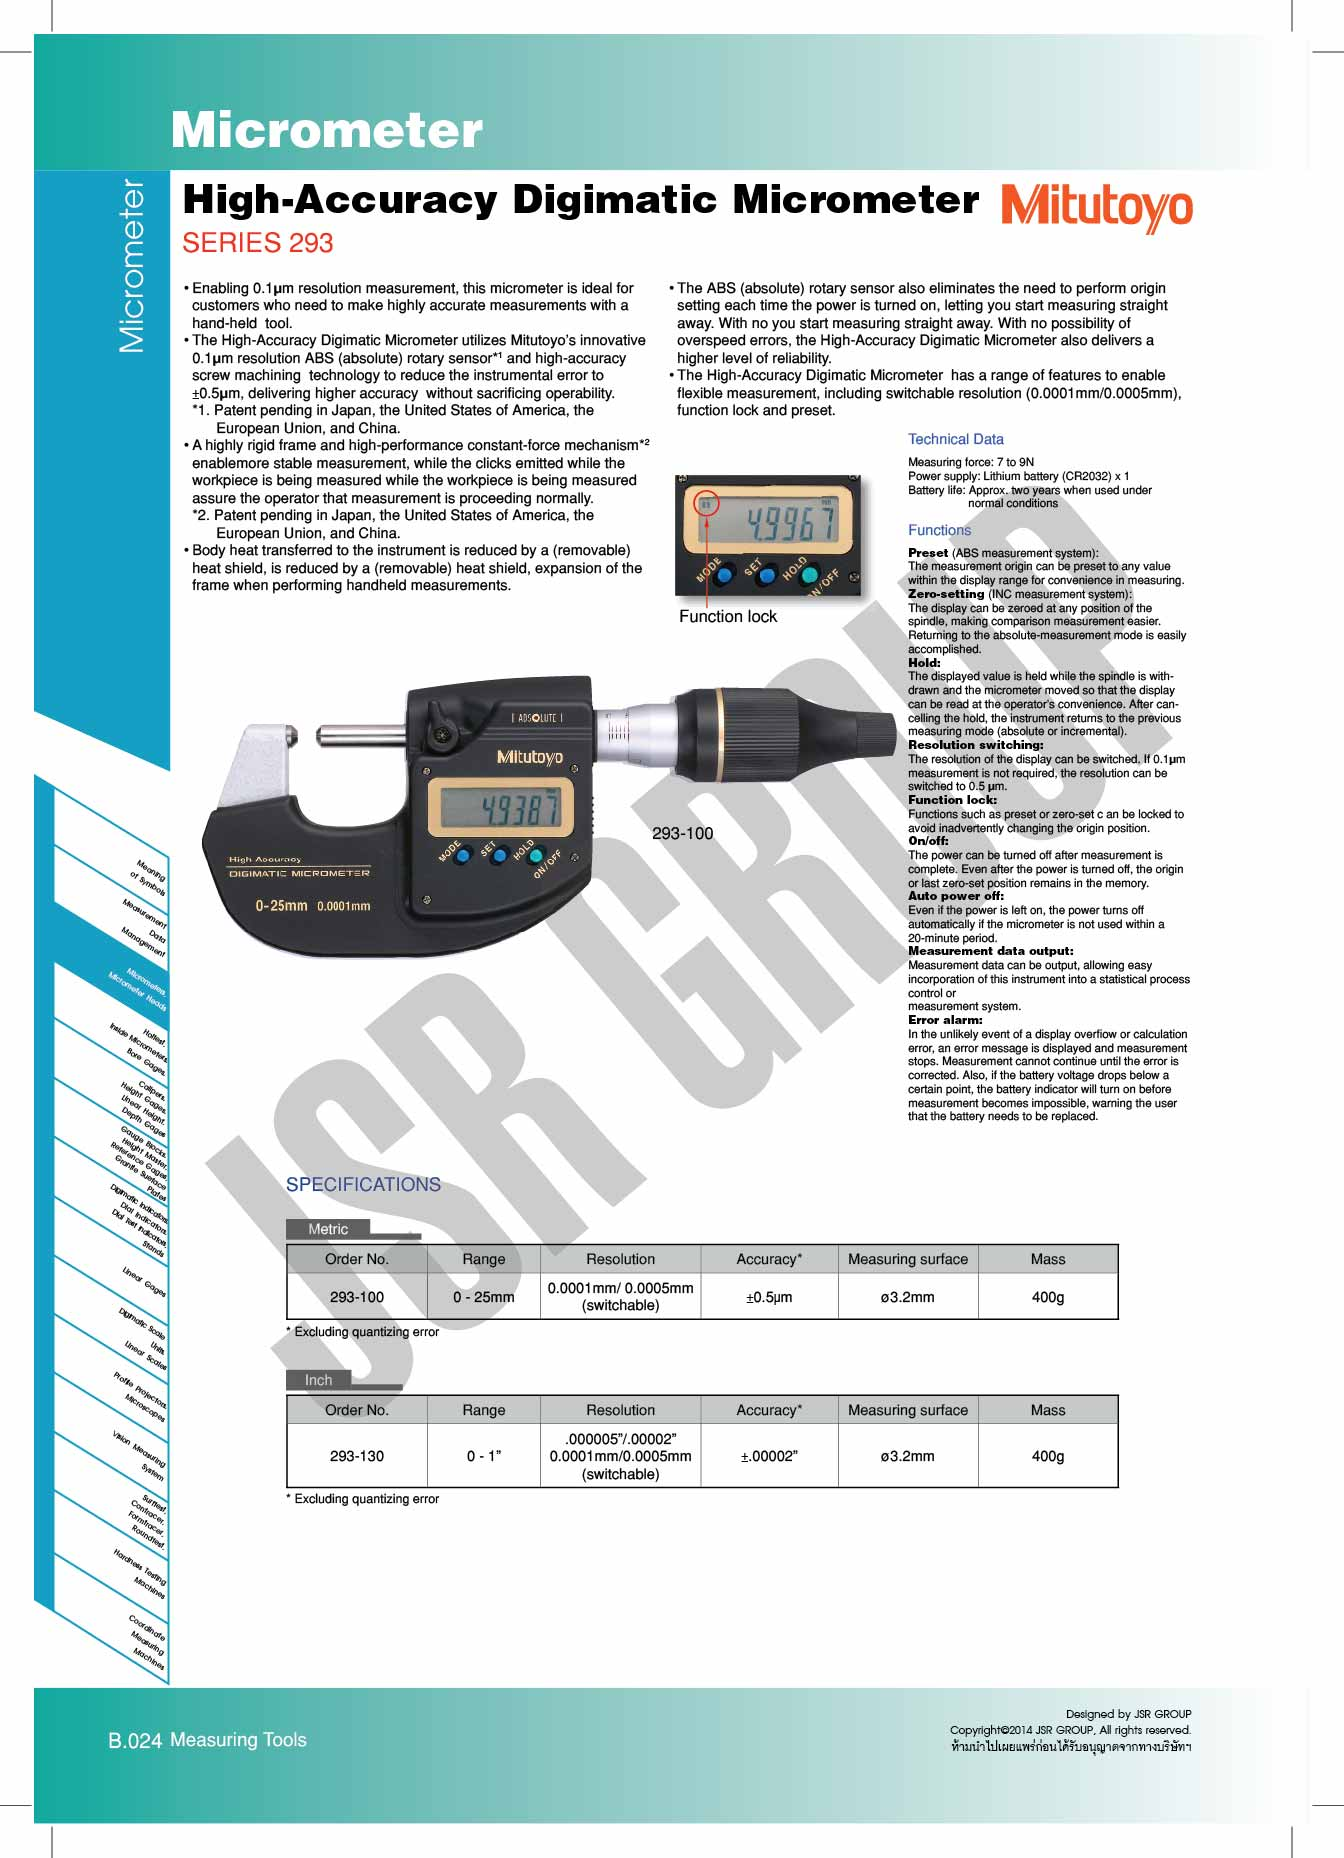 High-Accuracy-Digimatic-Micrometer